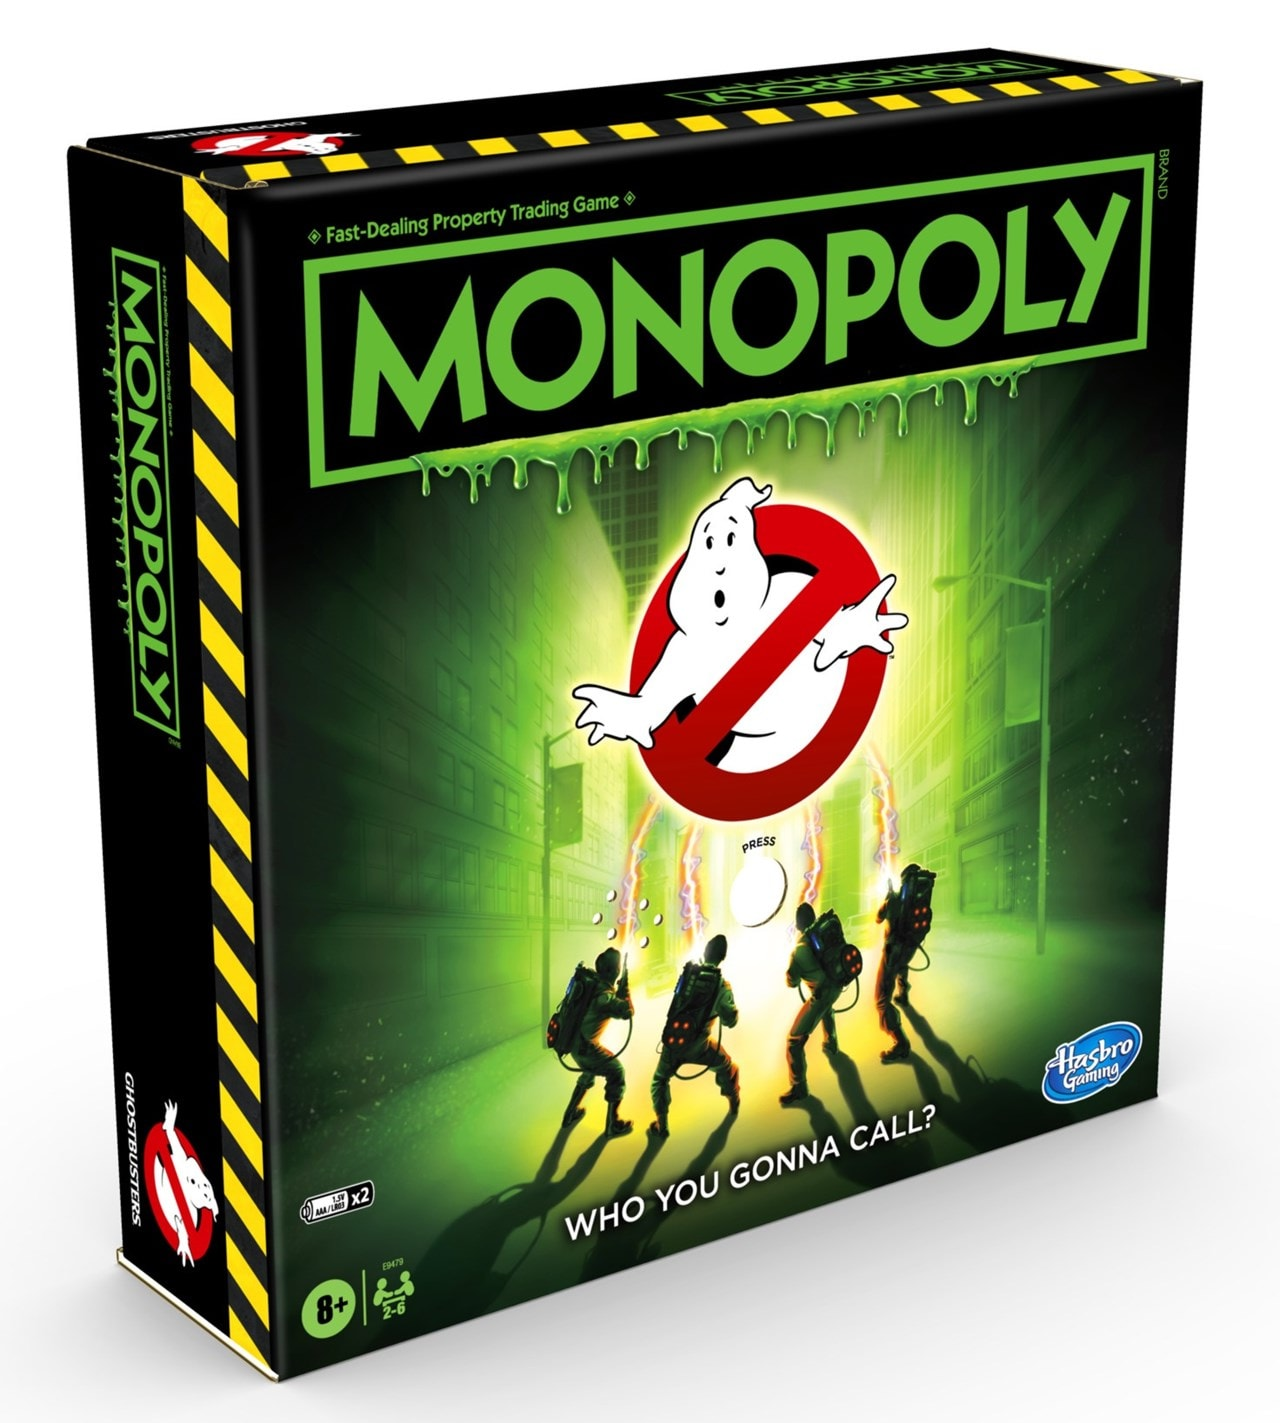 Monopoly: Ghostbusters Edition - 4